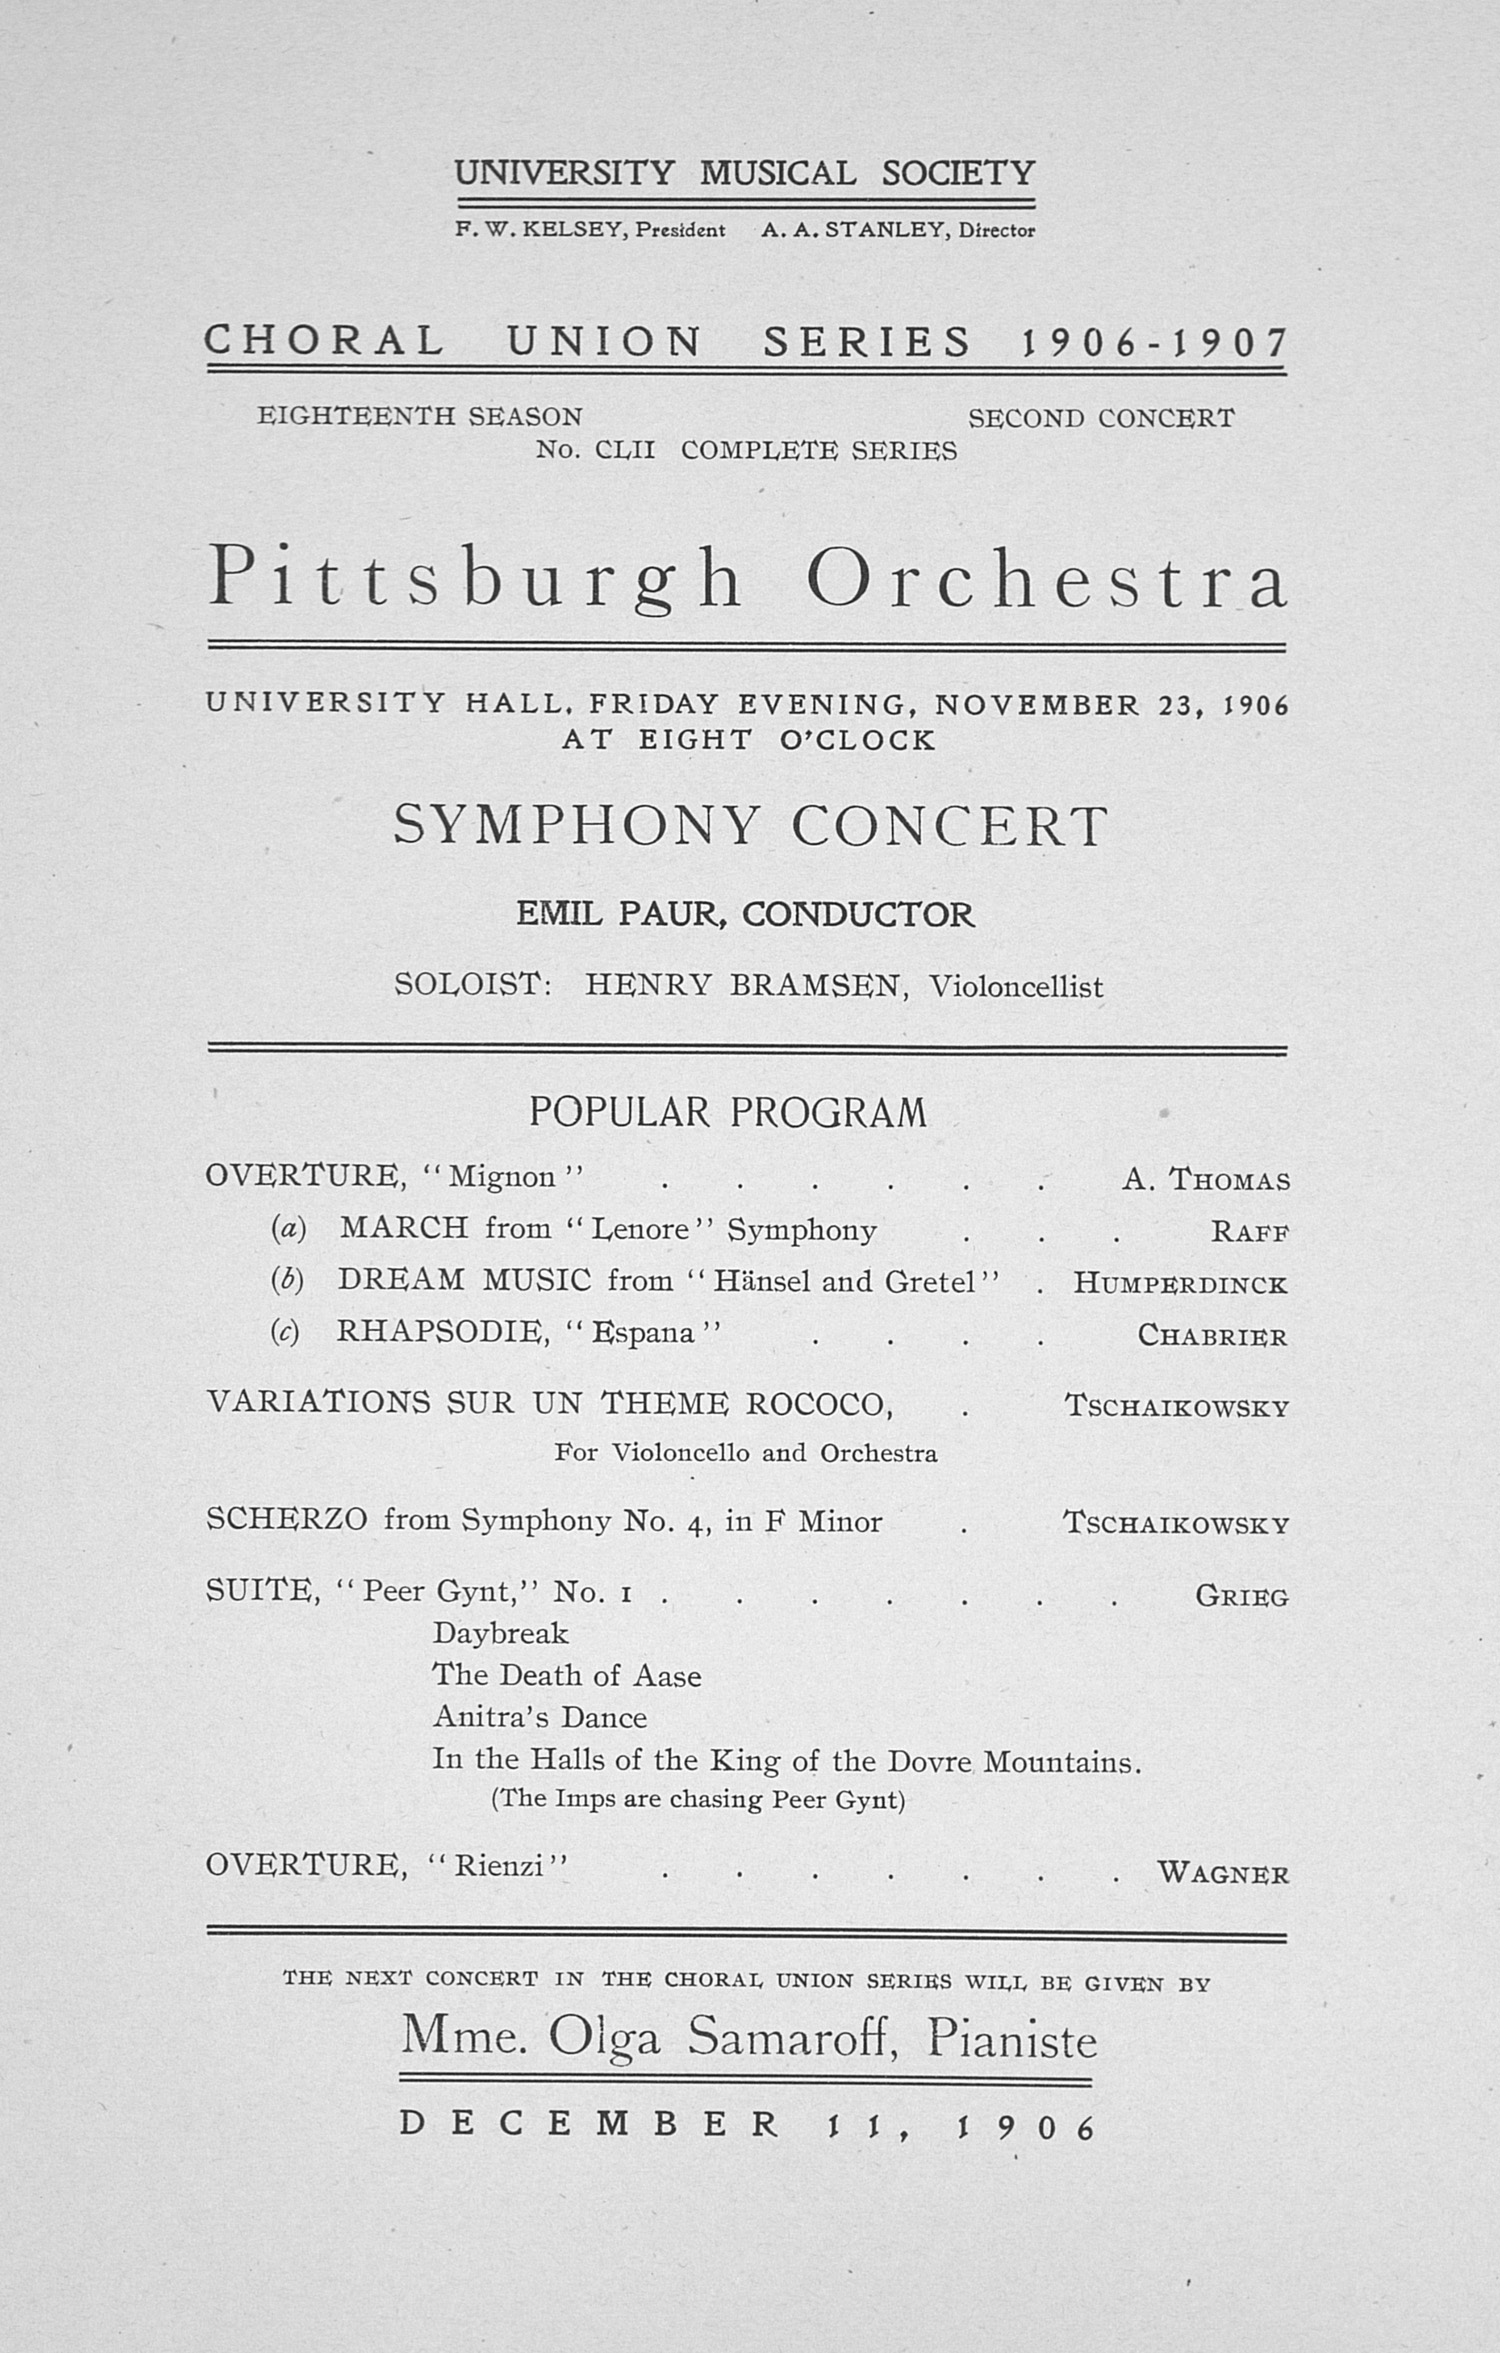 UMS Concert Program, November 23, 1906: Choral Union Series -- Pittsburgh Orchestra image